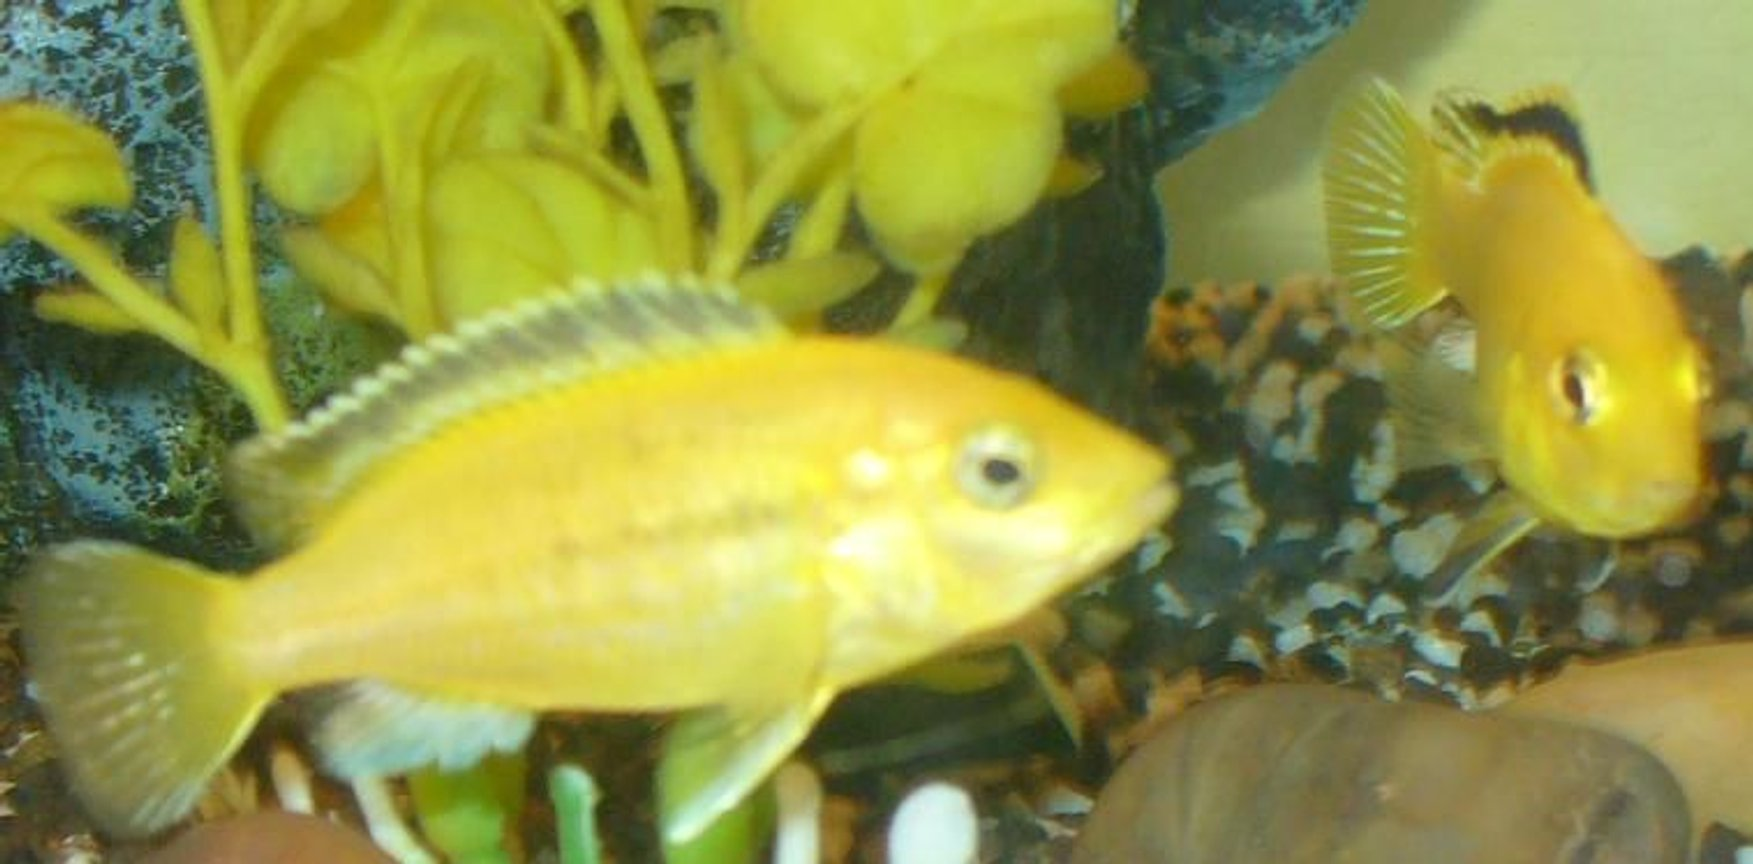 freshwater fish - labidochromis caeruleus - electric yellow cichlid stocking in 100 gallons tank - Electric Yellows (a little blurry sorry but they are hard to catch lol)